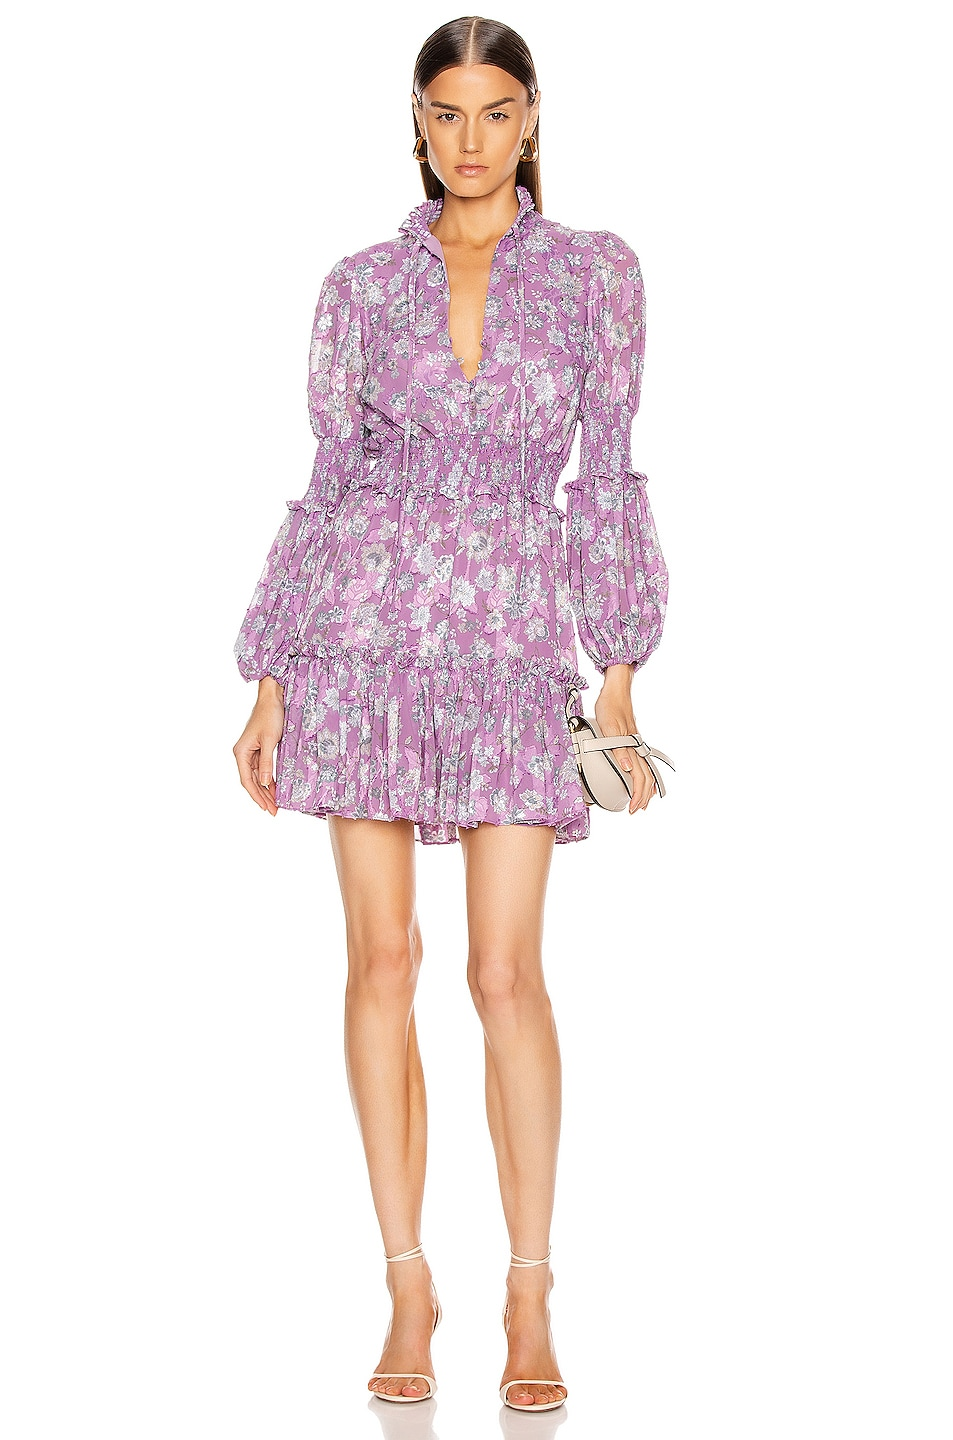 Image 1 of Alexis Rosewell Dress in Lilac Floral